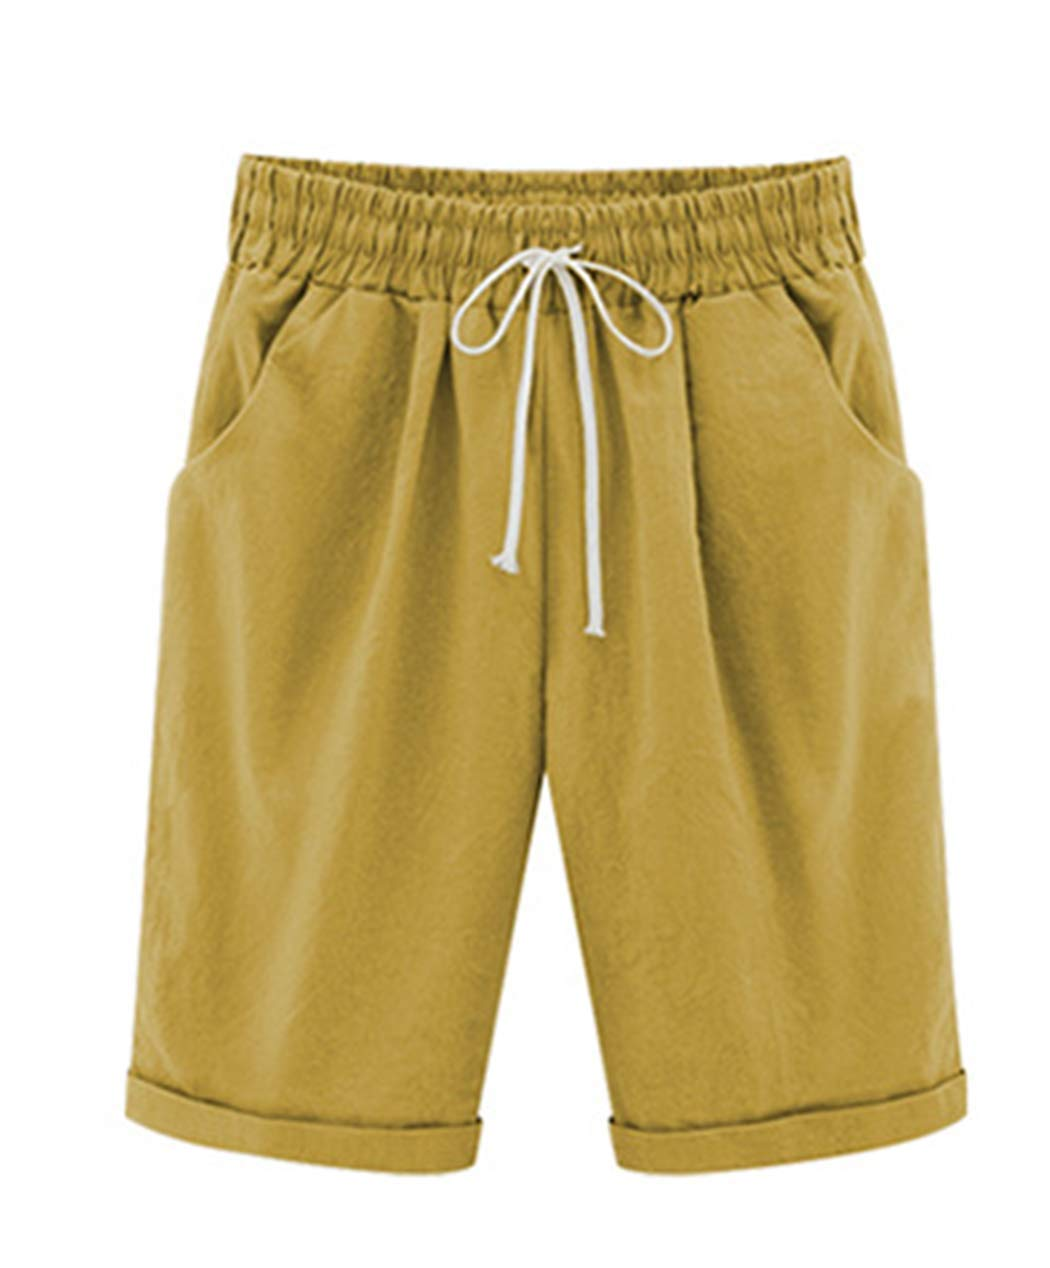 Vcansion Women's Drawstring Elastic Waist Shorts Plus Size Shorts Turmeric Asian 4XL/US 12-14 by Vcansion